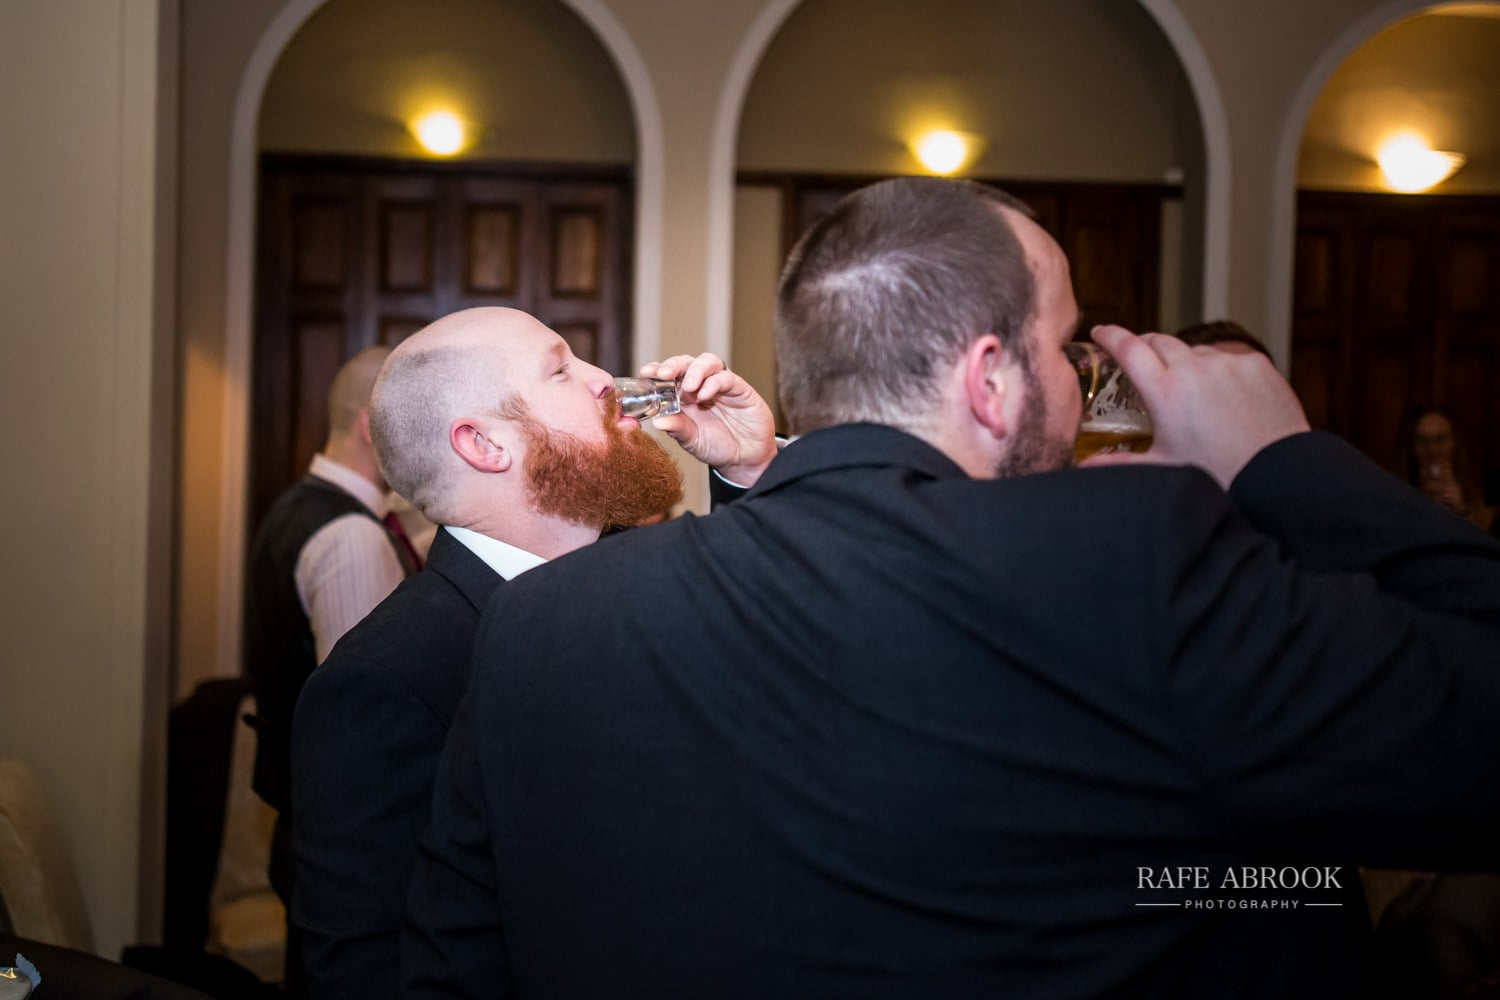 woodland manor hotel clapham bedford wedding hertfordshire wedding photographer-1272.jpg